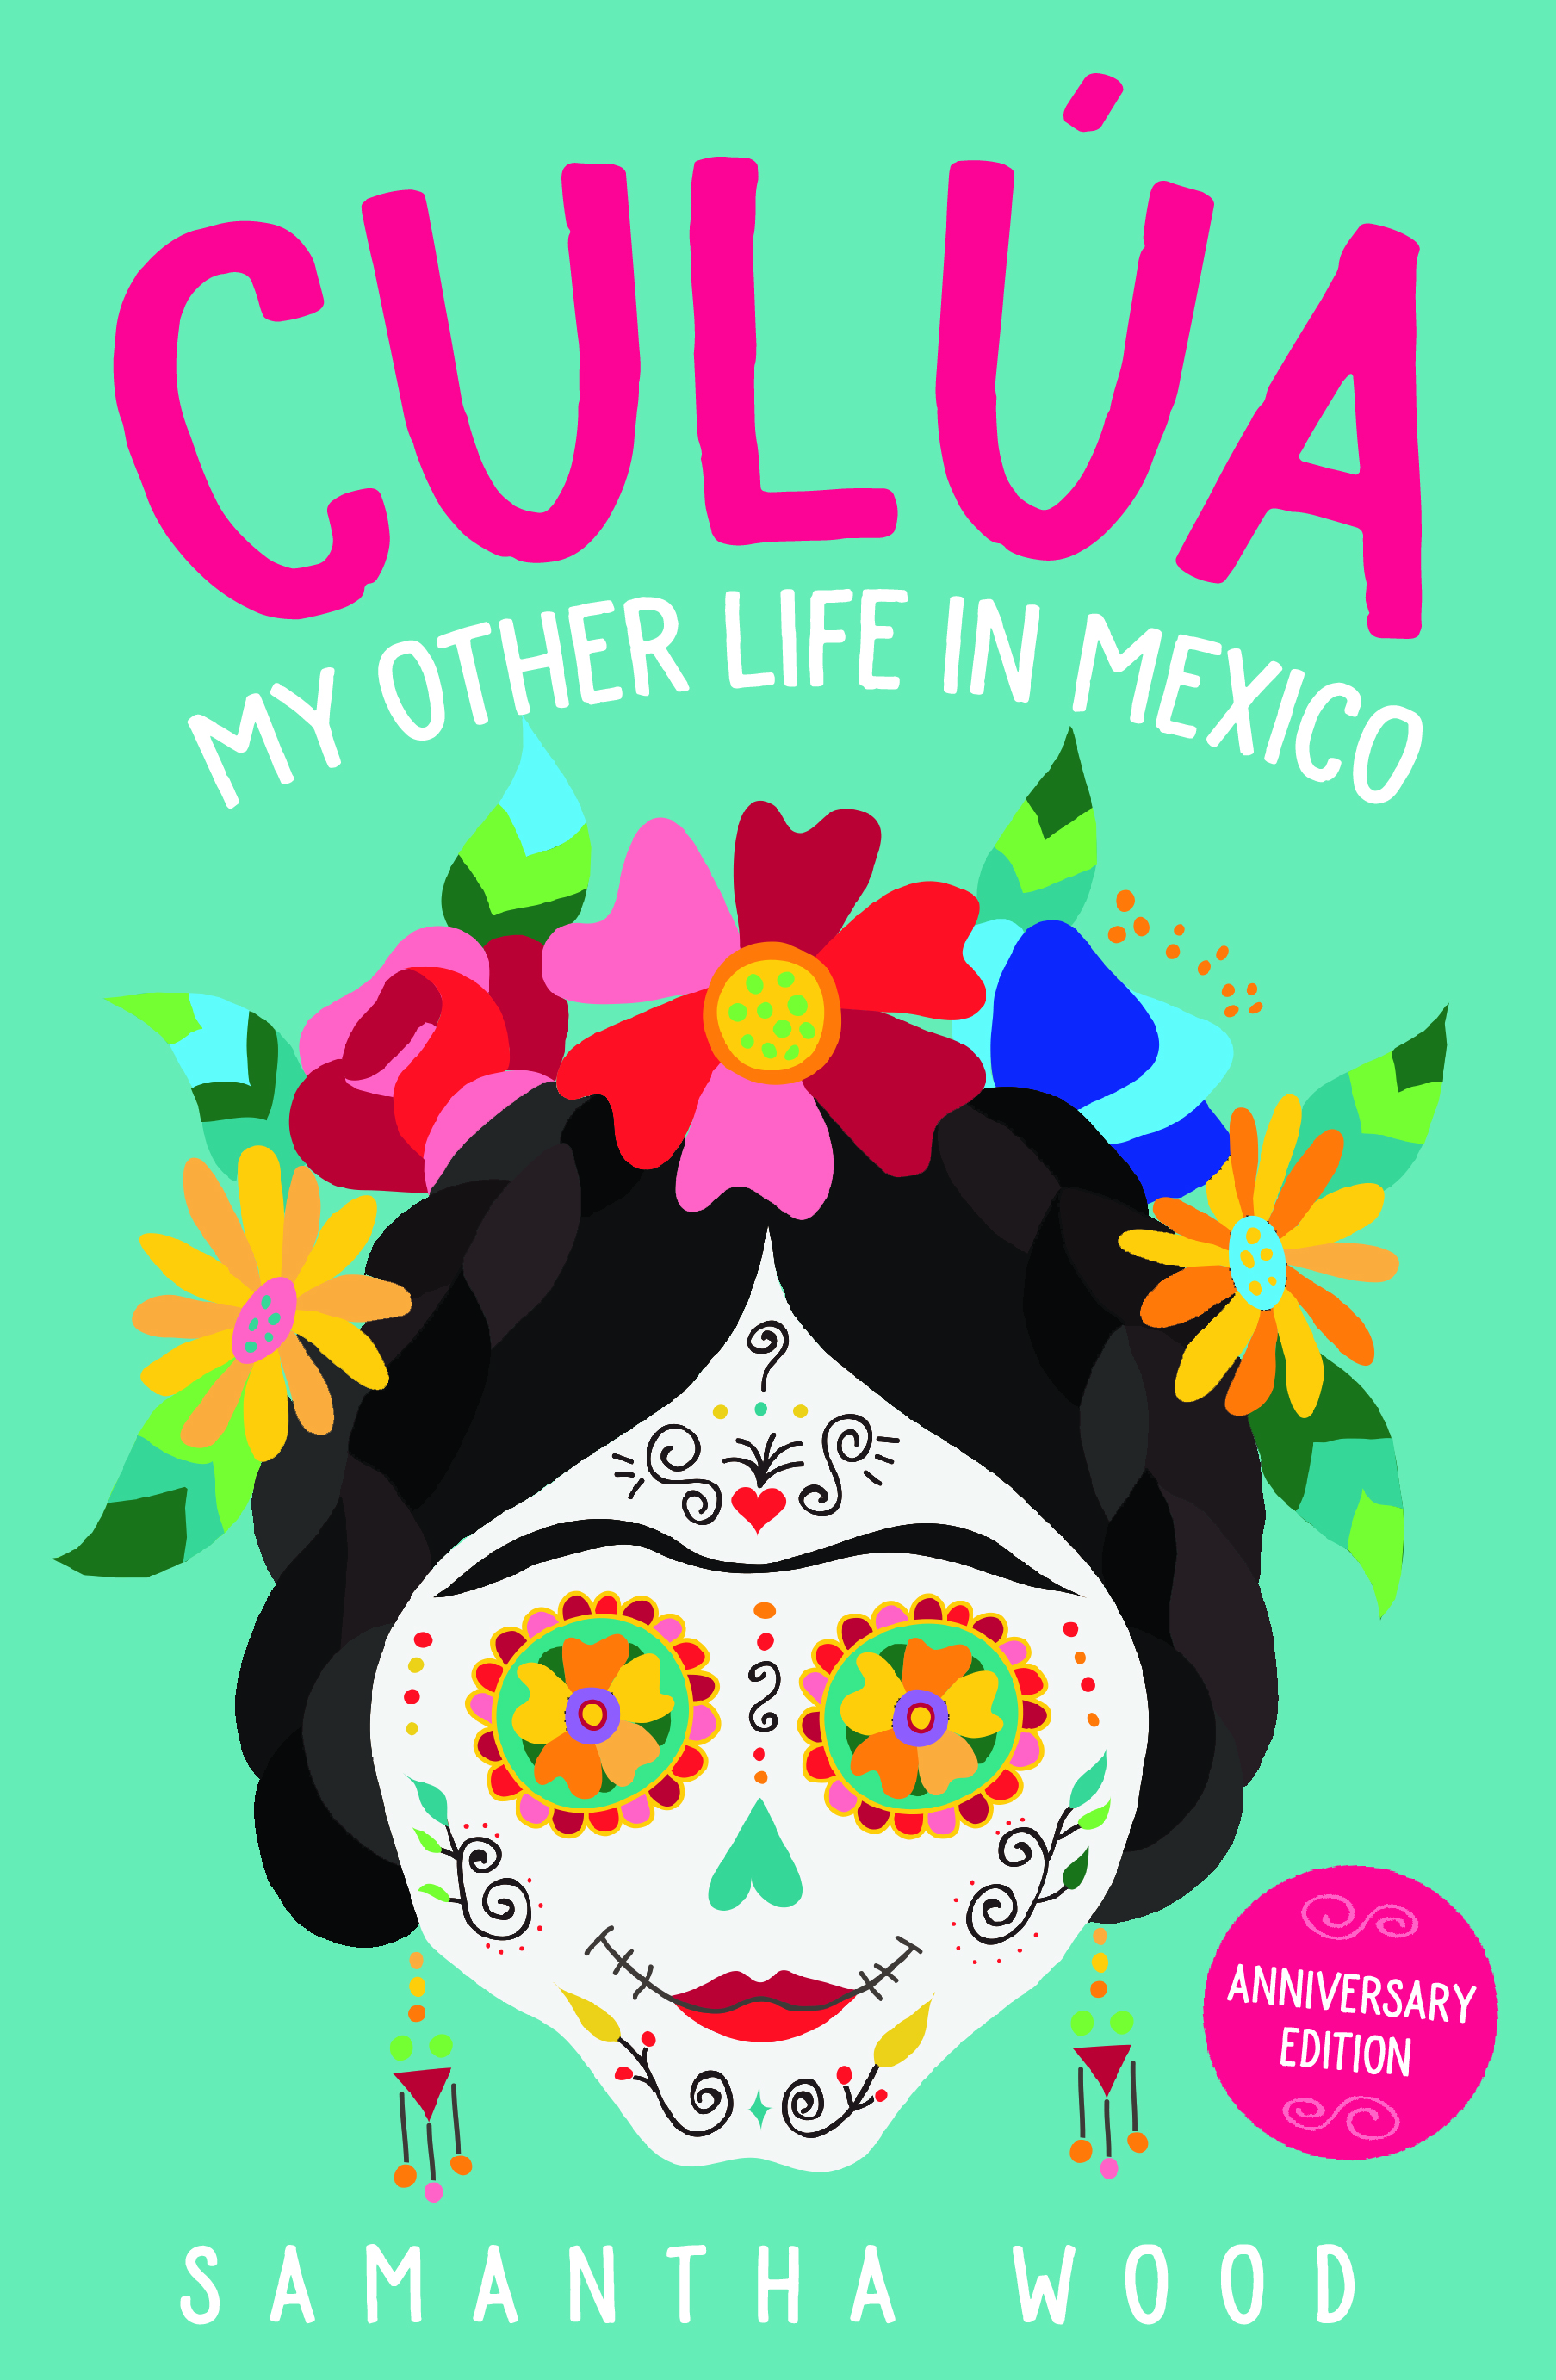 Culua: My Other Life in Mexico, a memoir by Samantha Wood